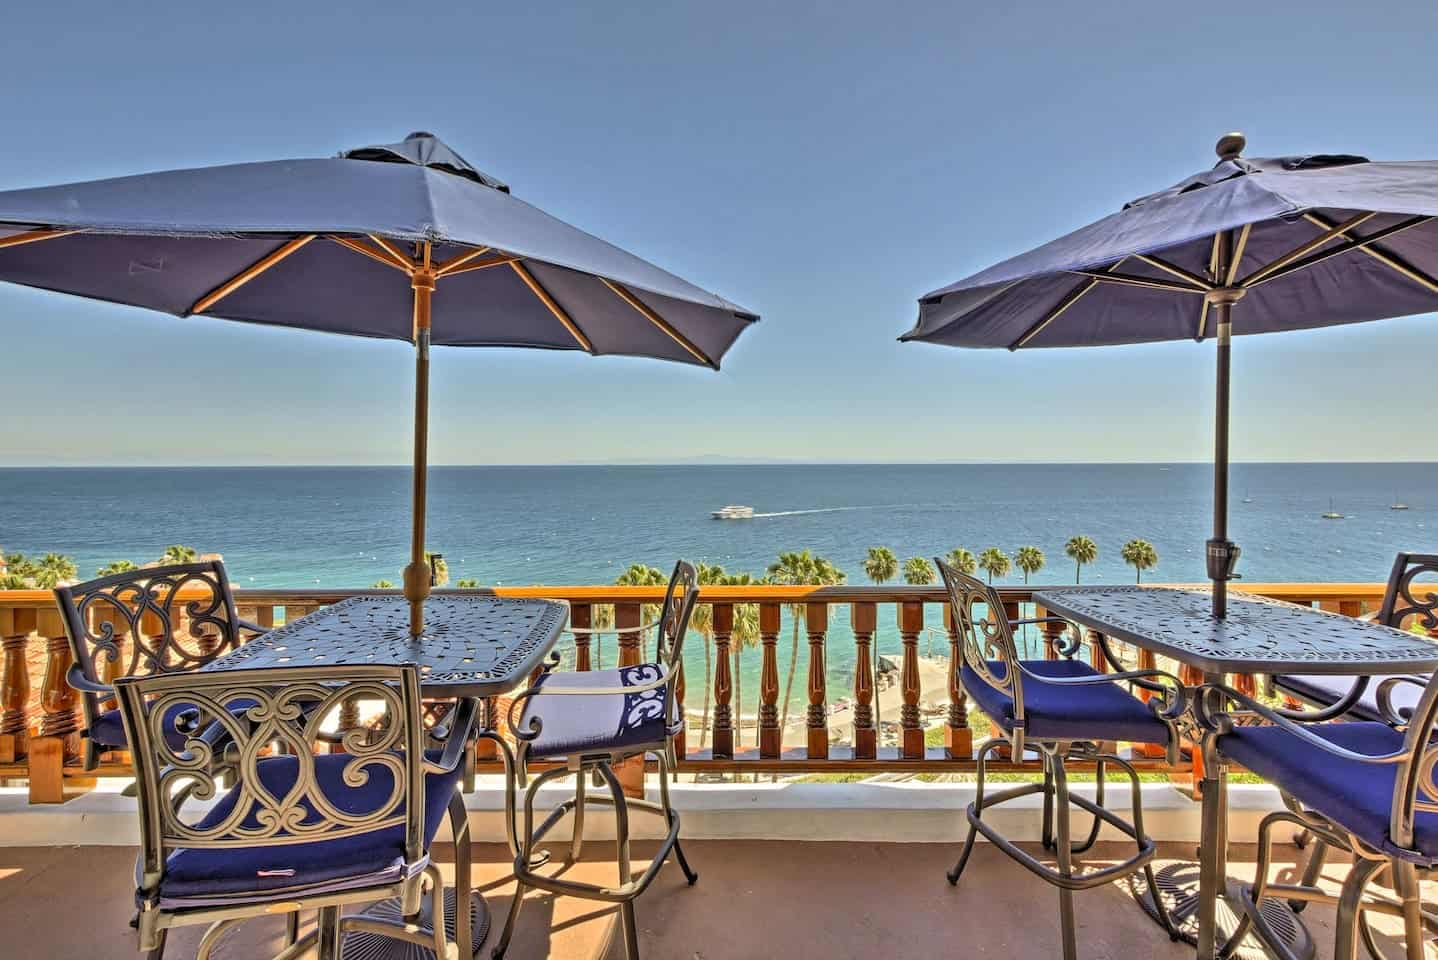 Image of Airbnb rental in Catalina Island